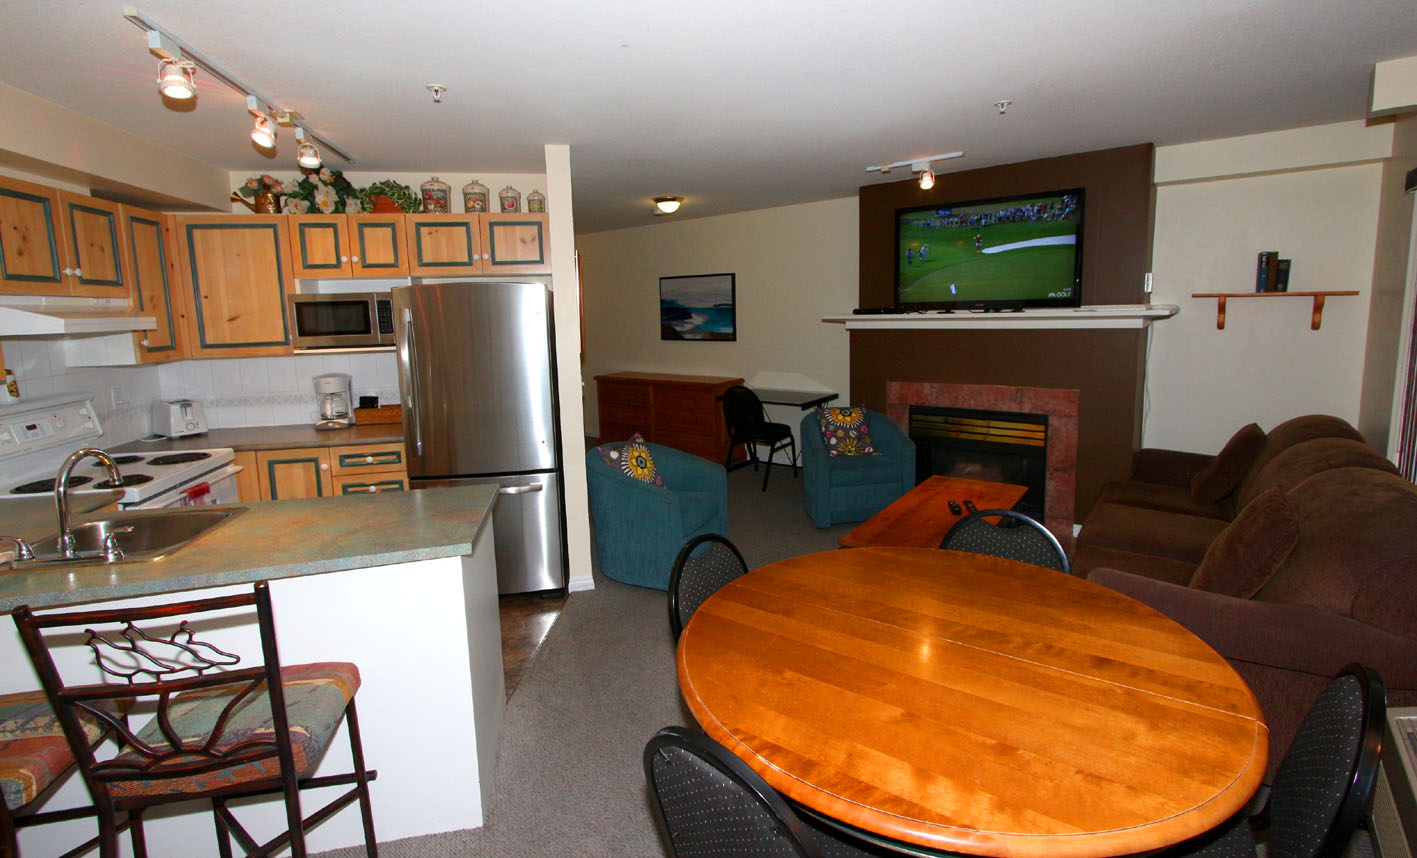 201-a-borgata-lodge-studio-vacation-rental-kelowna